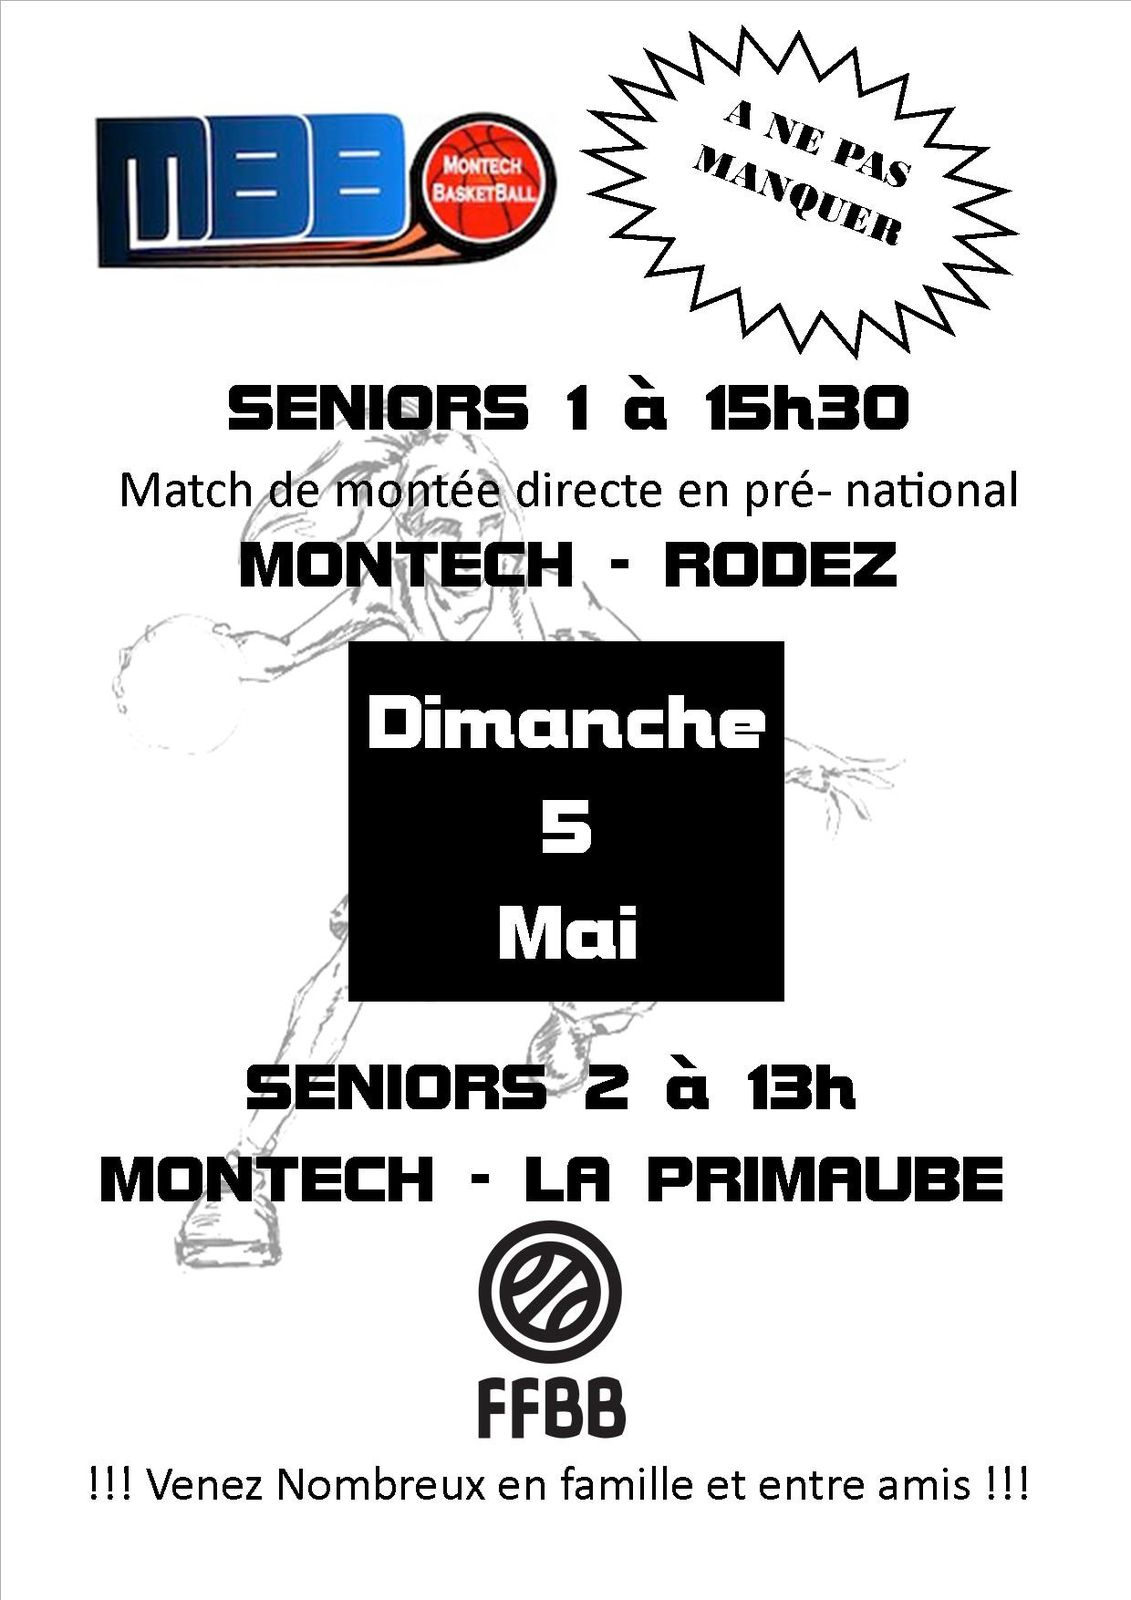 Attention dimanche 5 Mai match des Seniors 1 en montée Pré-national